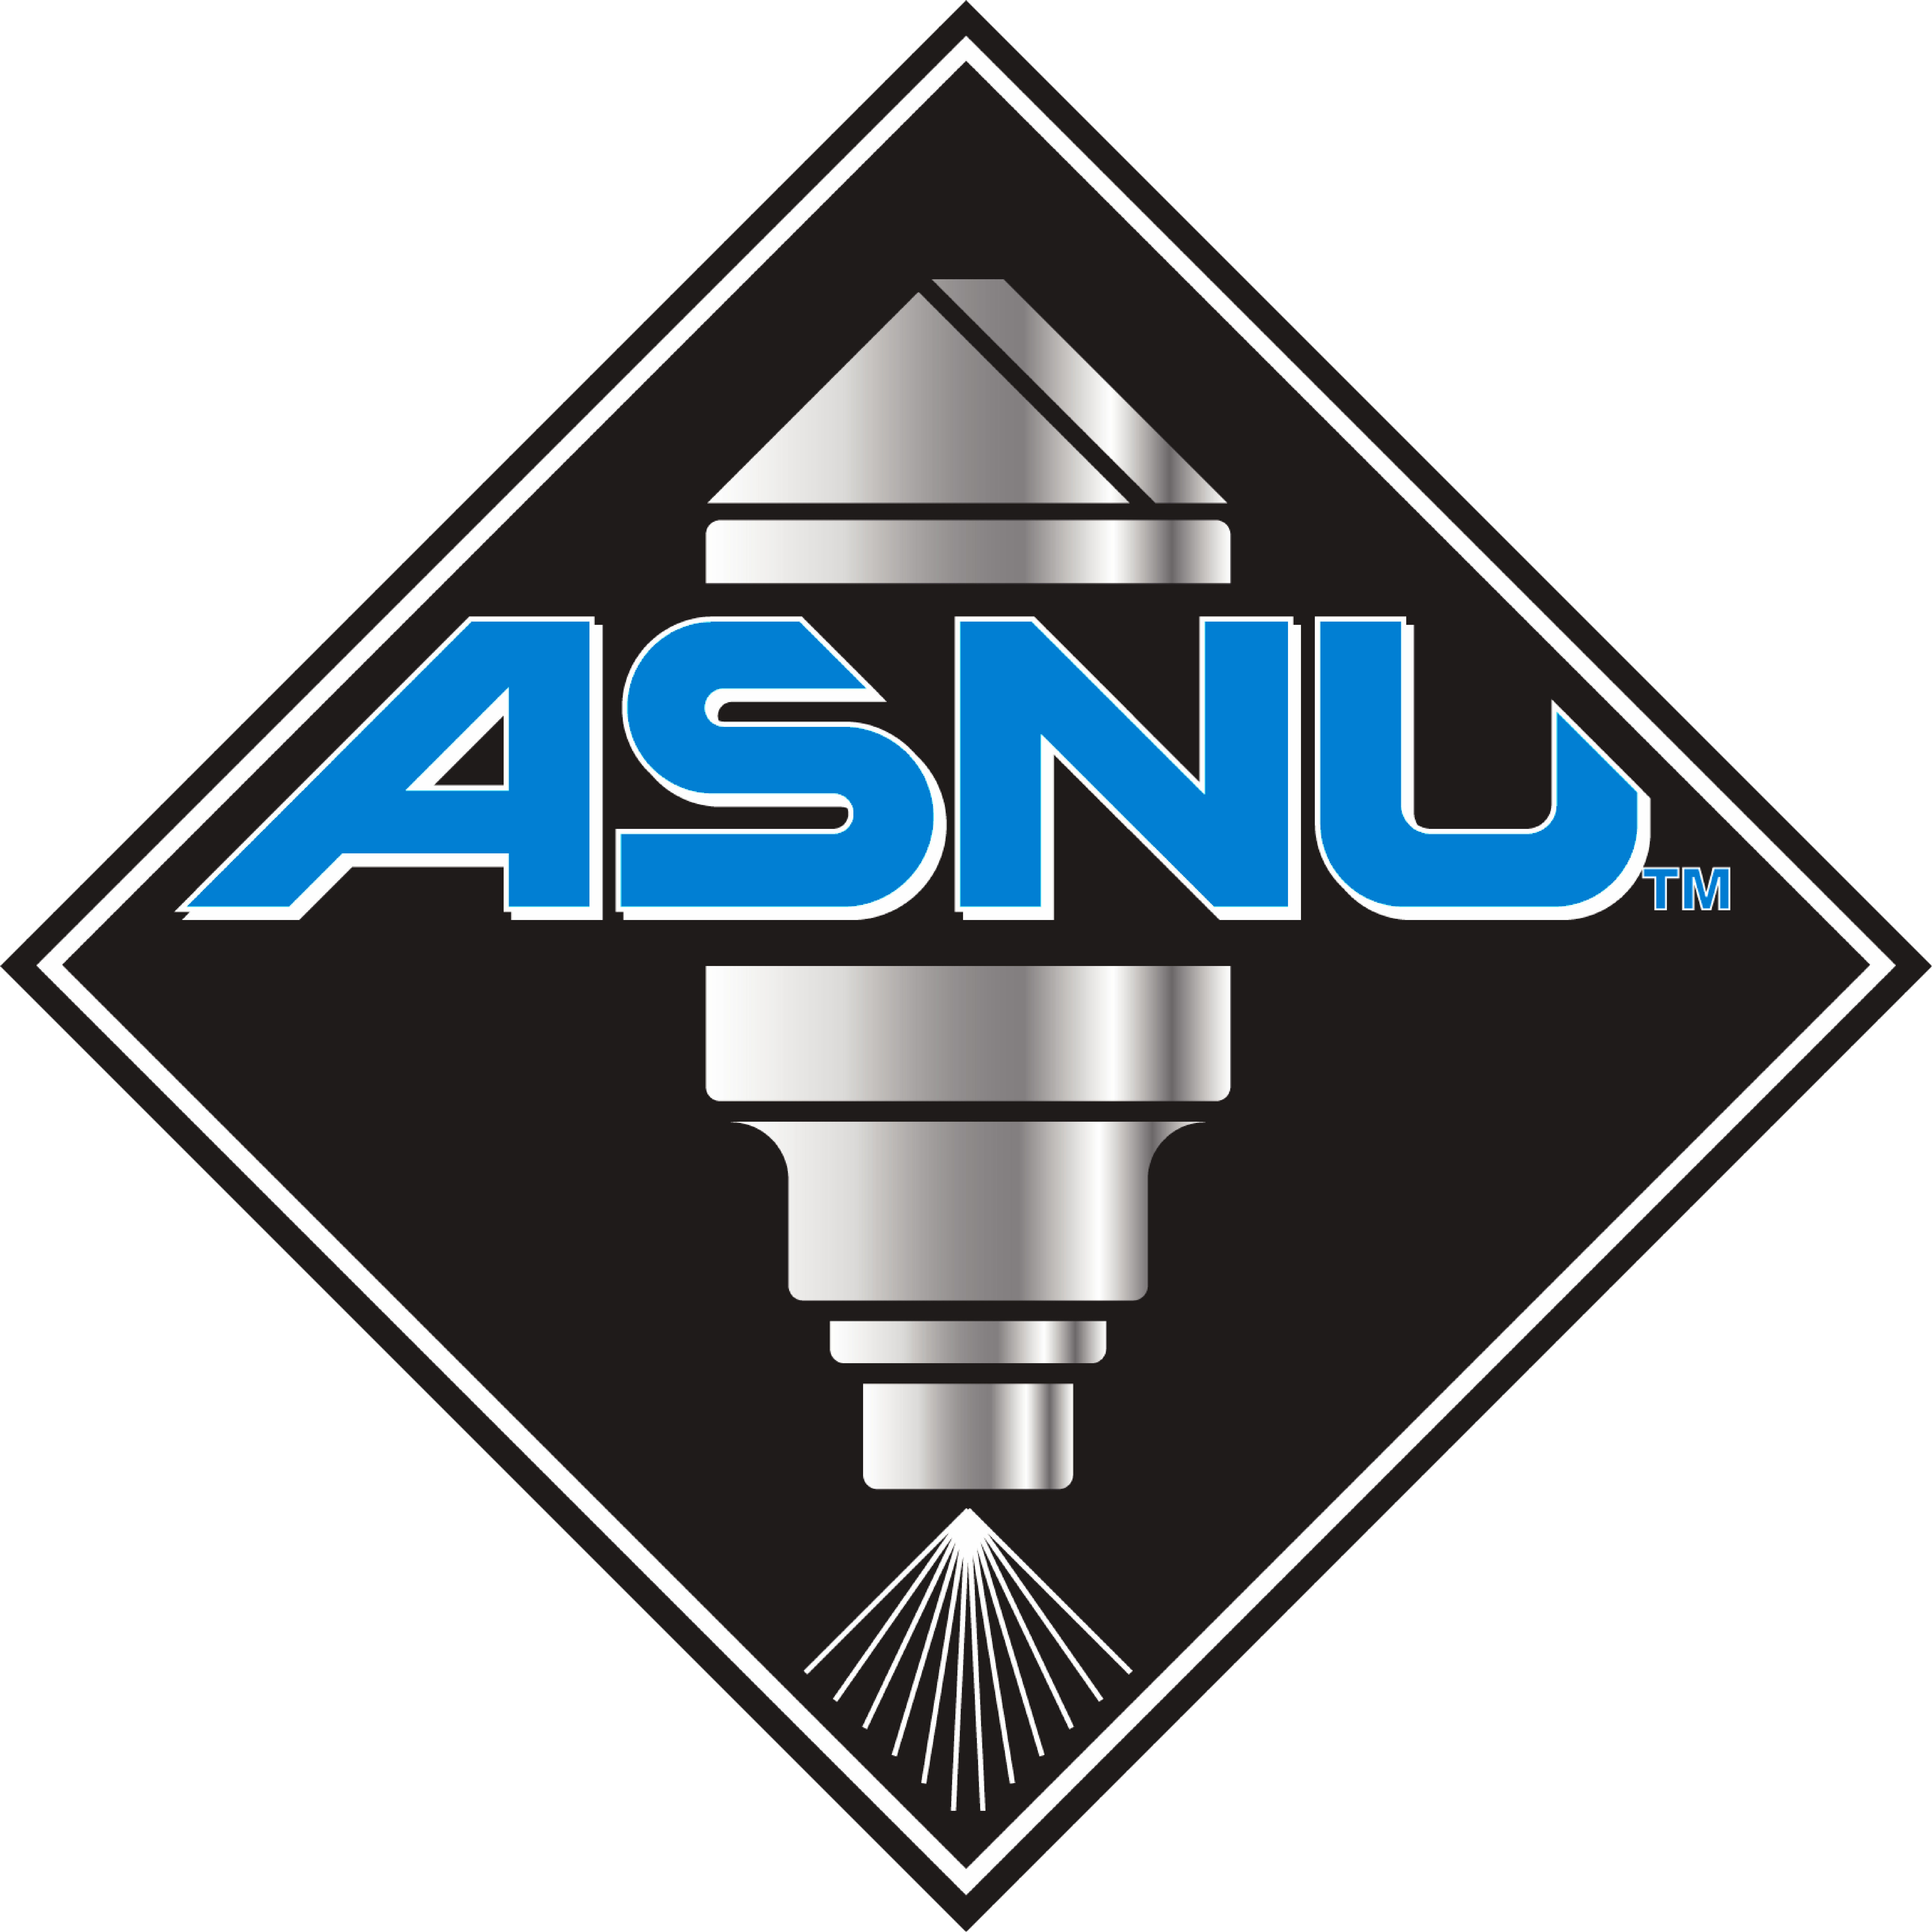 ASNU CORPORATION EUROPE LTD